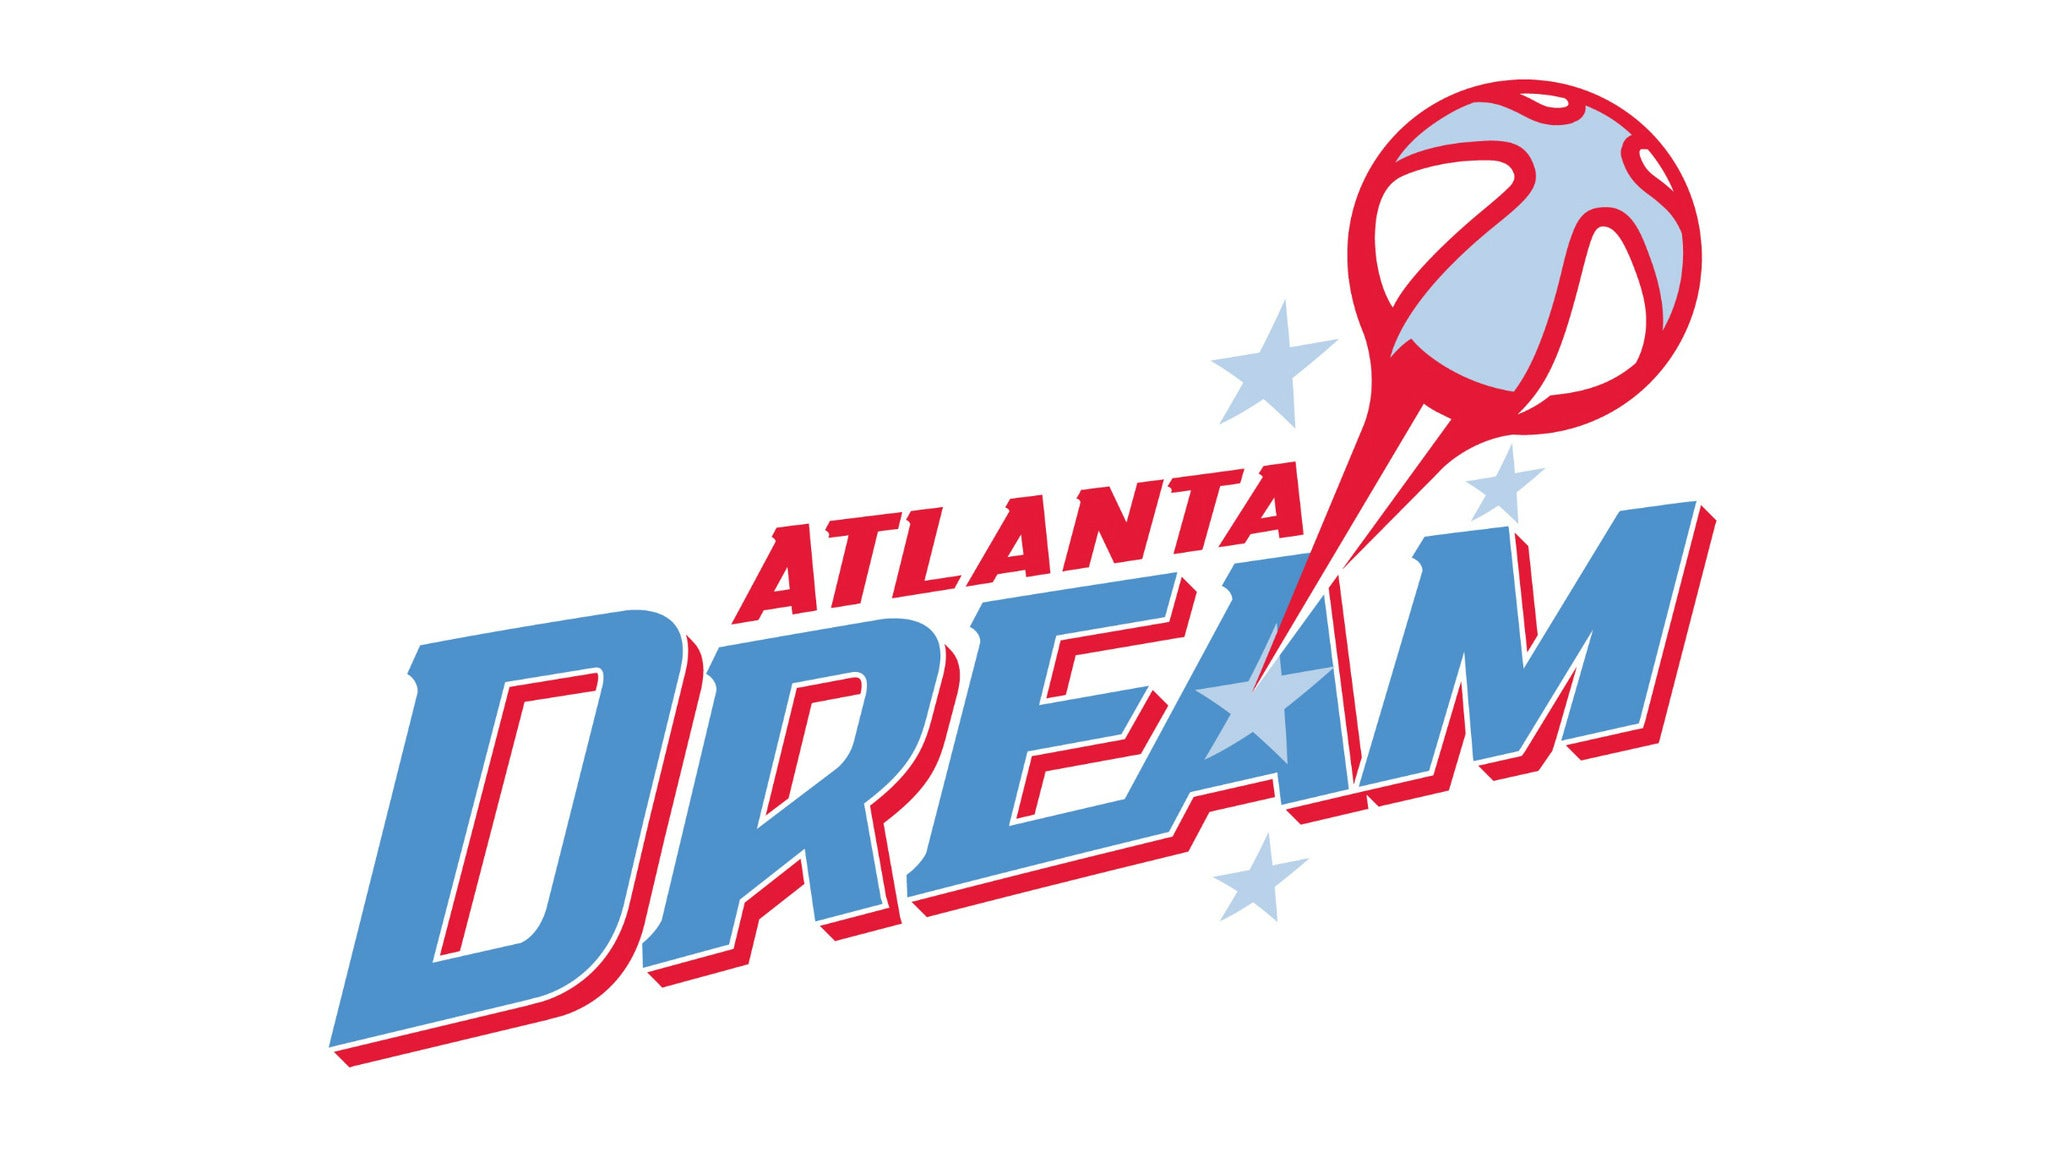 Atlanta Dream vs. Chicago Sky at State Farm Arena